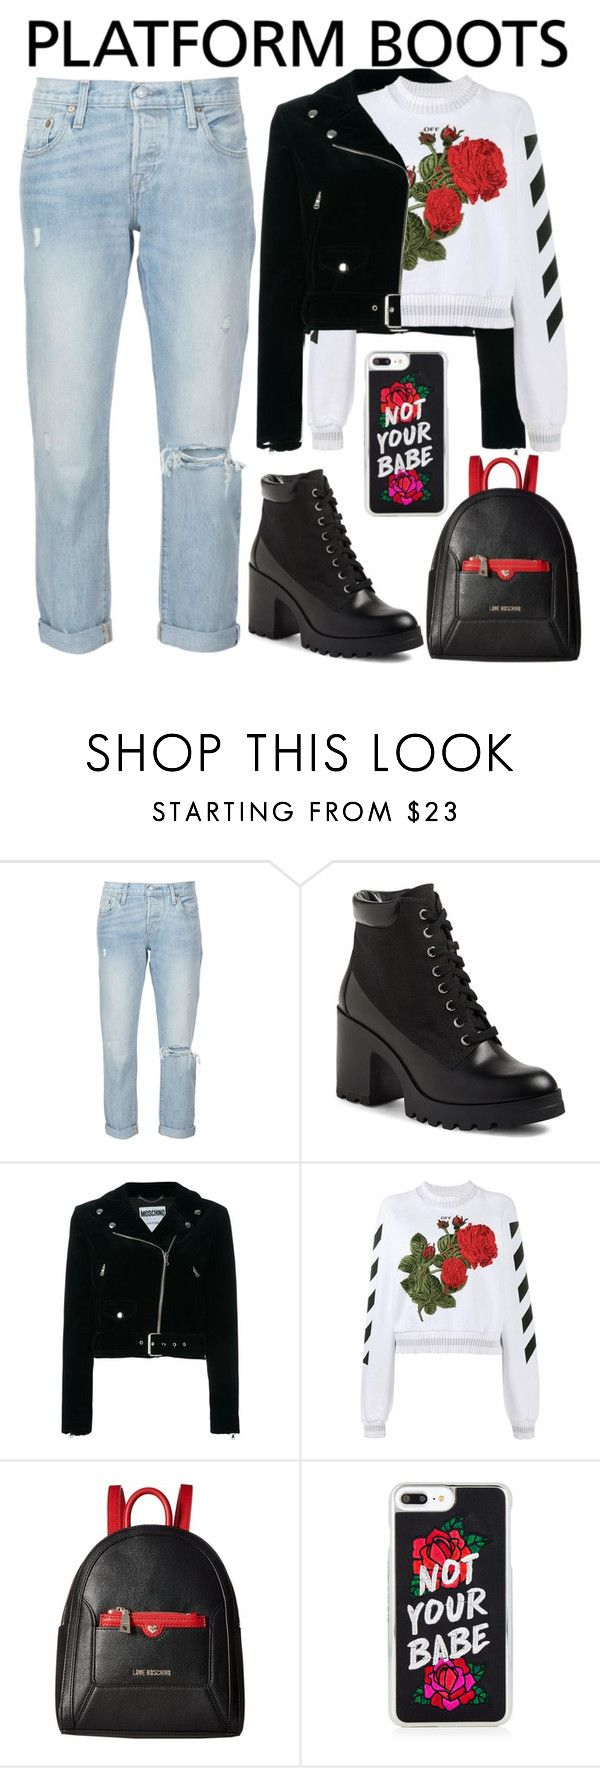 """""""Roses"""" by chiaral95 ❤ liked on Polyvore featuring Levi's, BP., Moschino, Off-White, Love Moschino and PlatformBoots"""